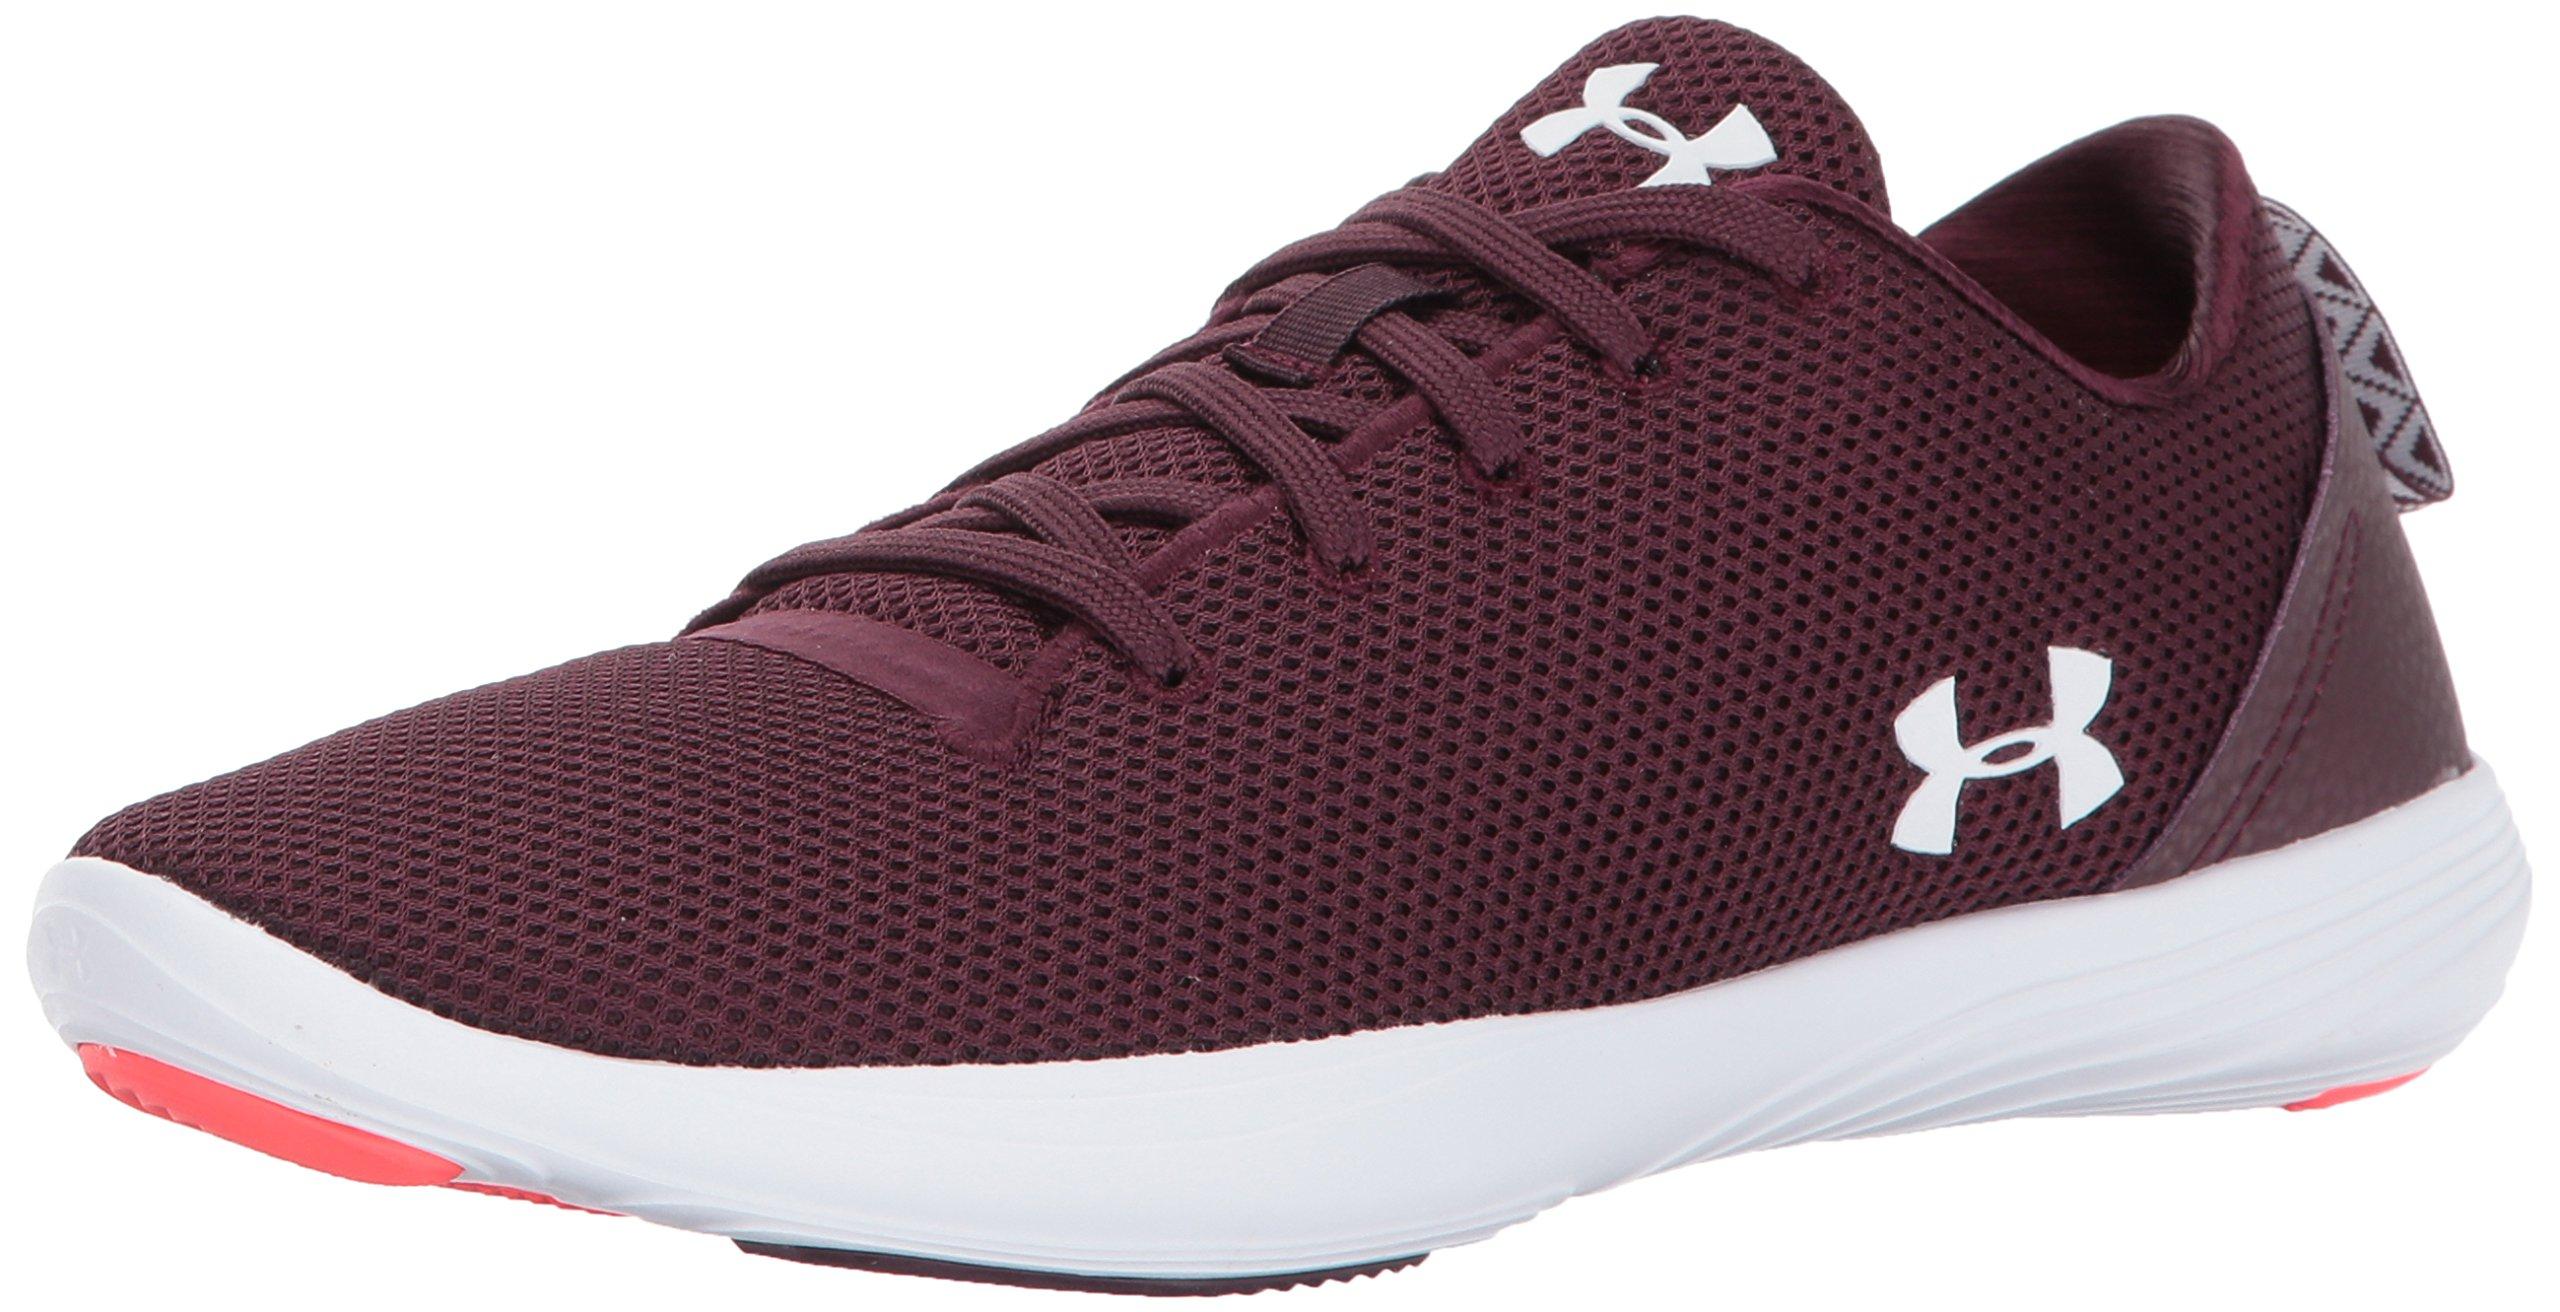 Under Armour Women's Street Precision Sport Low Neutral, Raisin Red/Raisin Red/White, 7.5 B(M) US